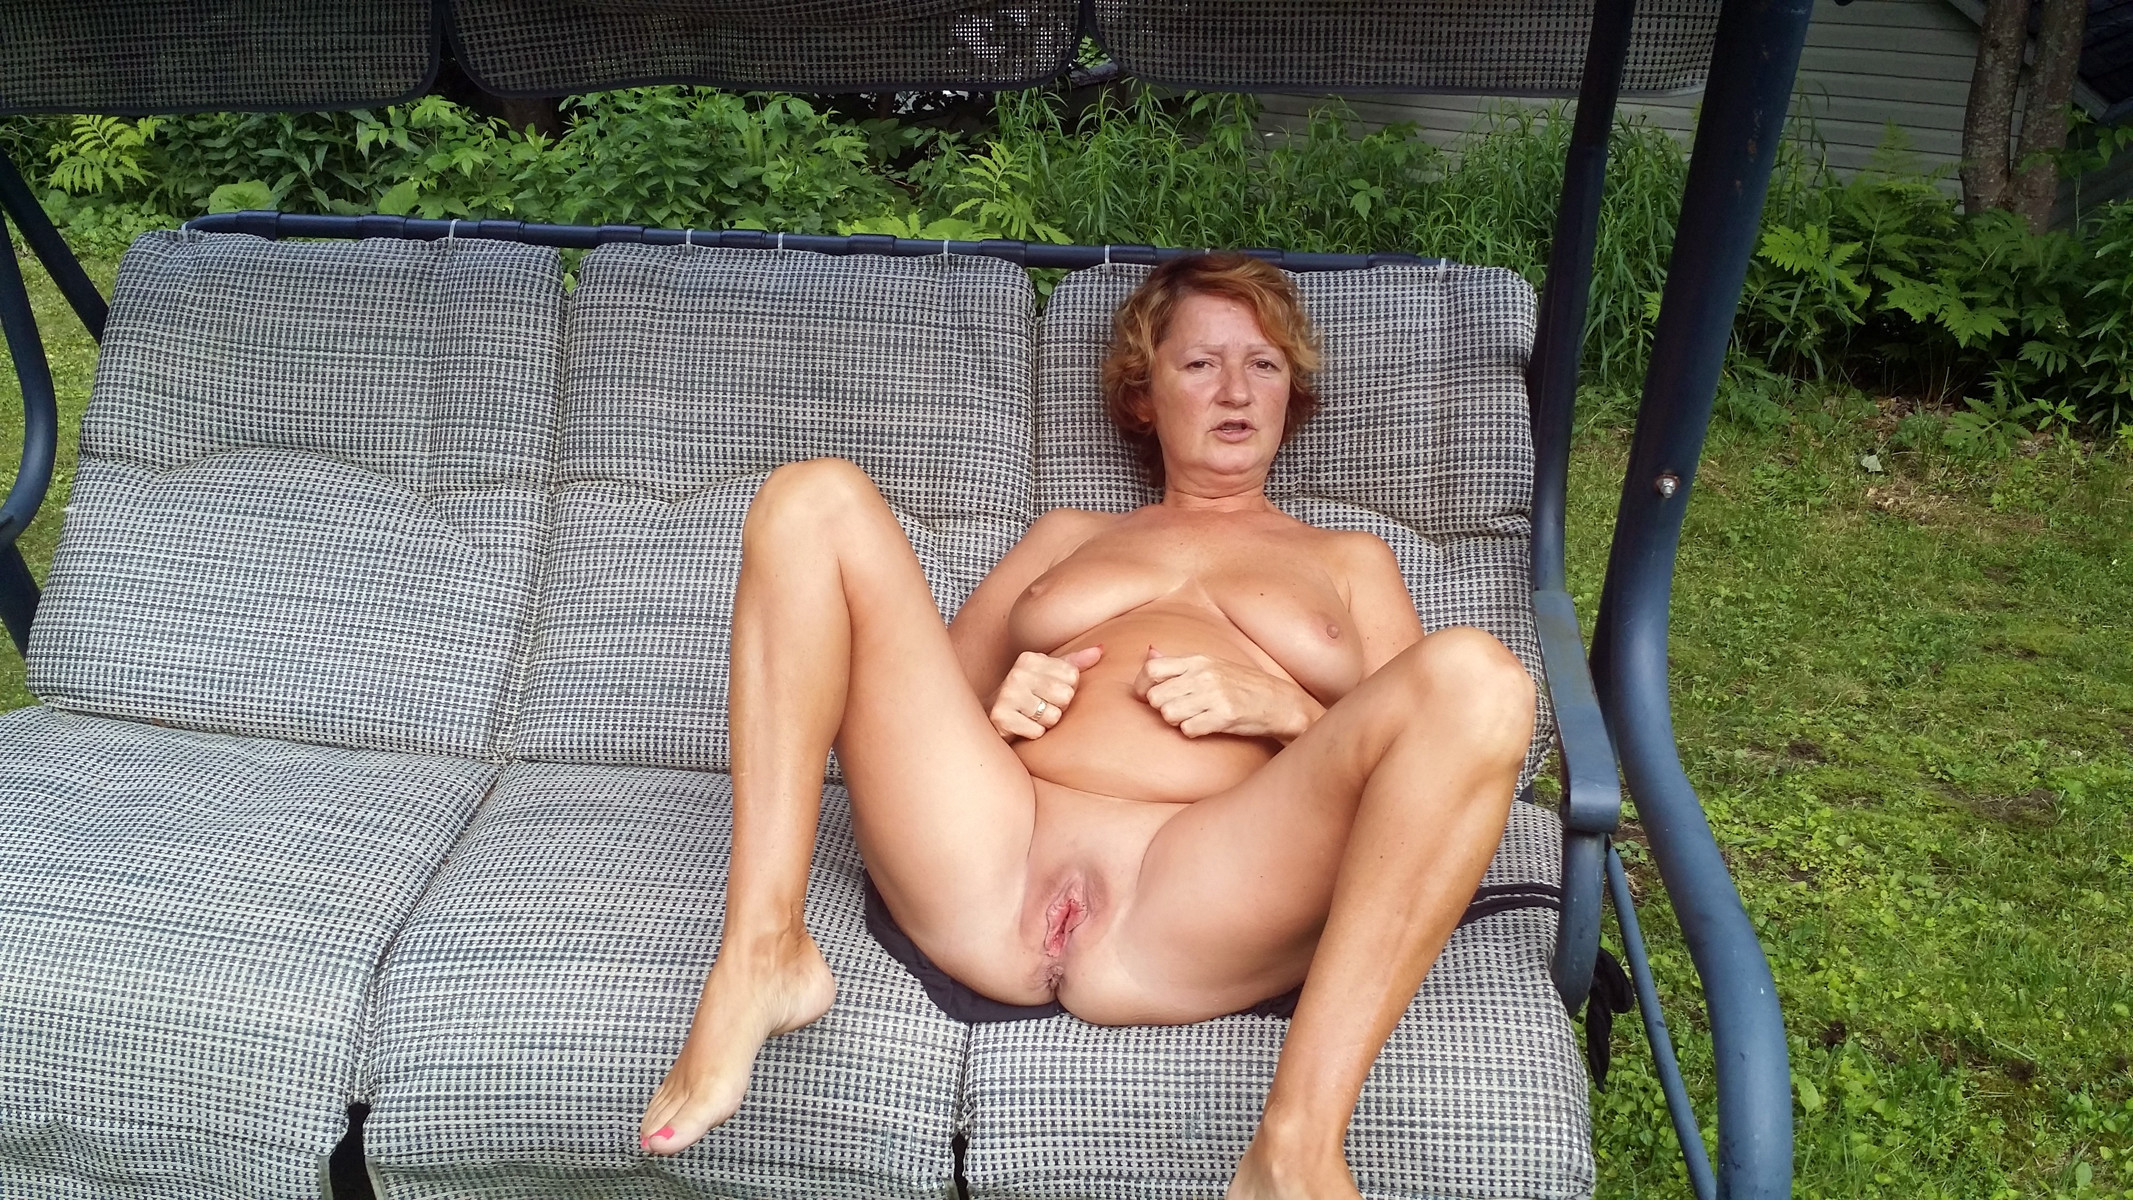 Canadian Couple Loves Posing Naked Outdoor